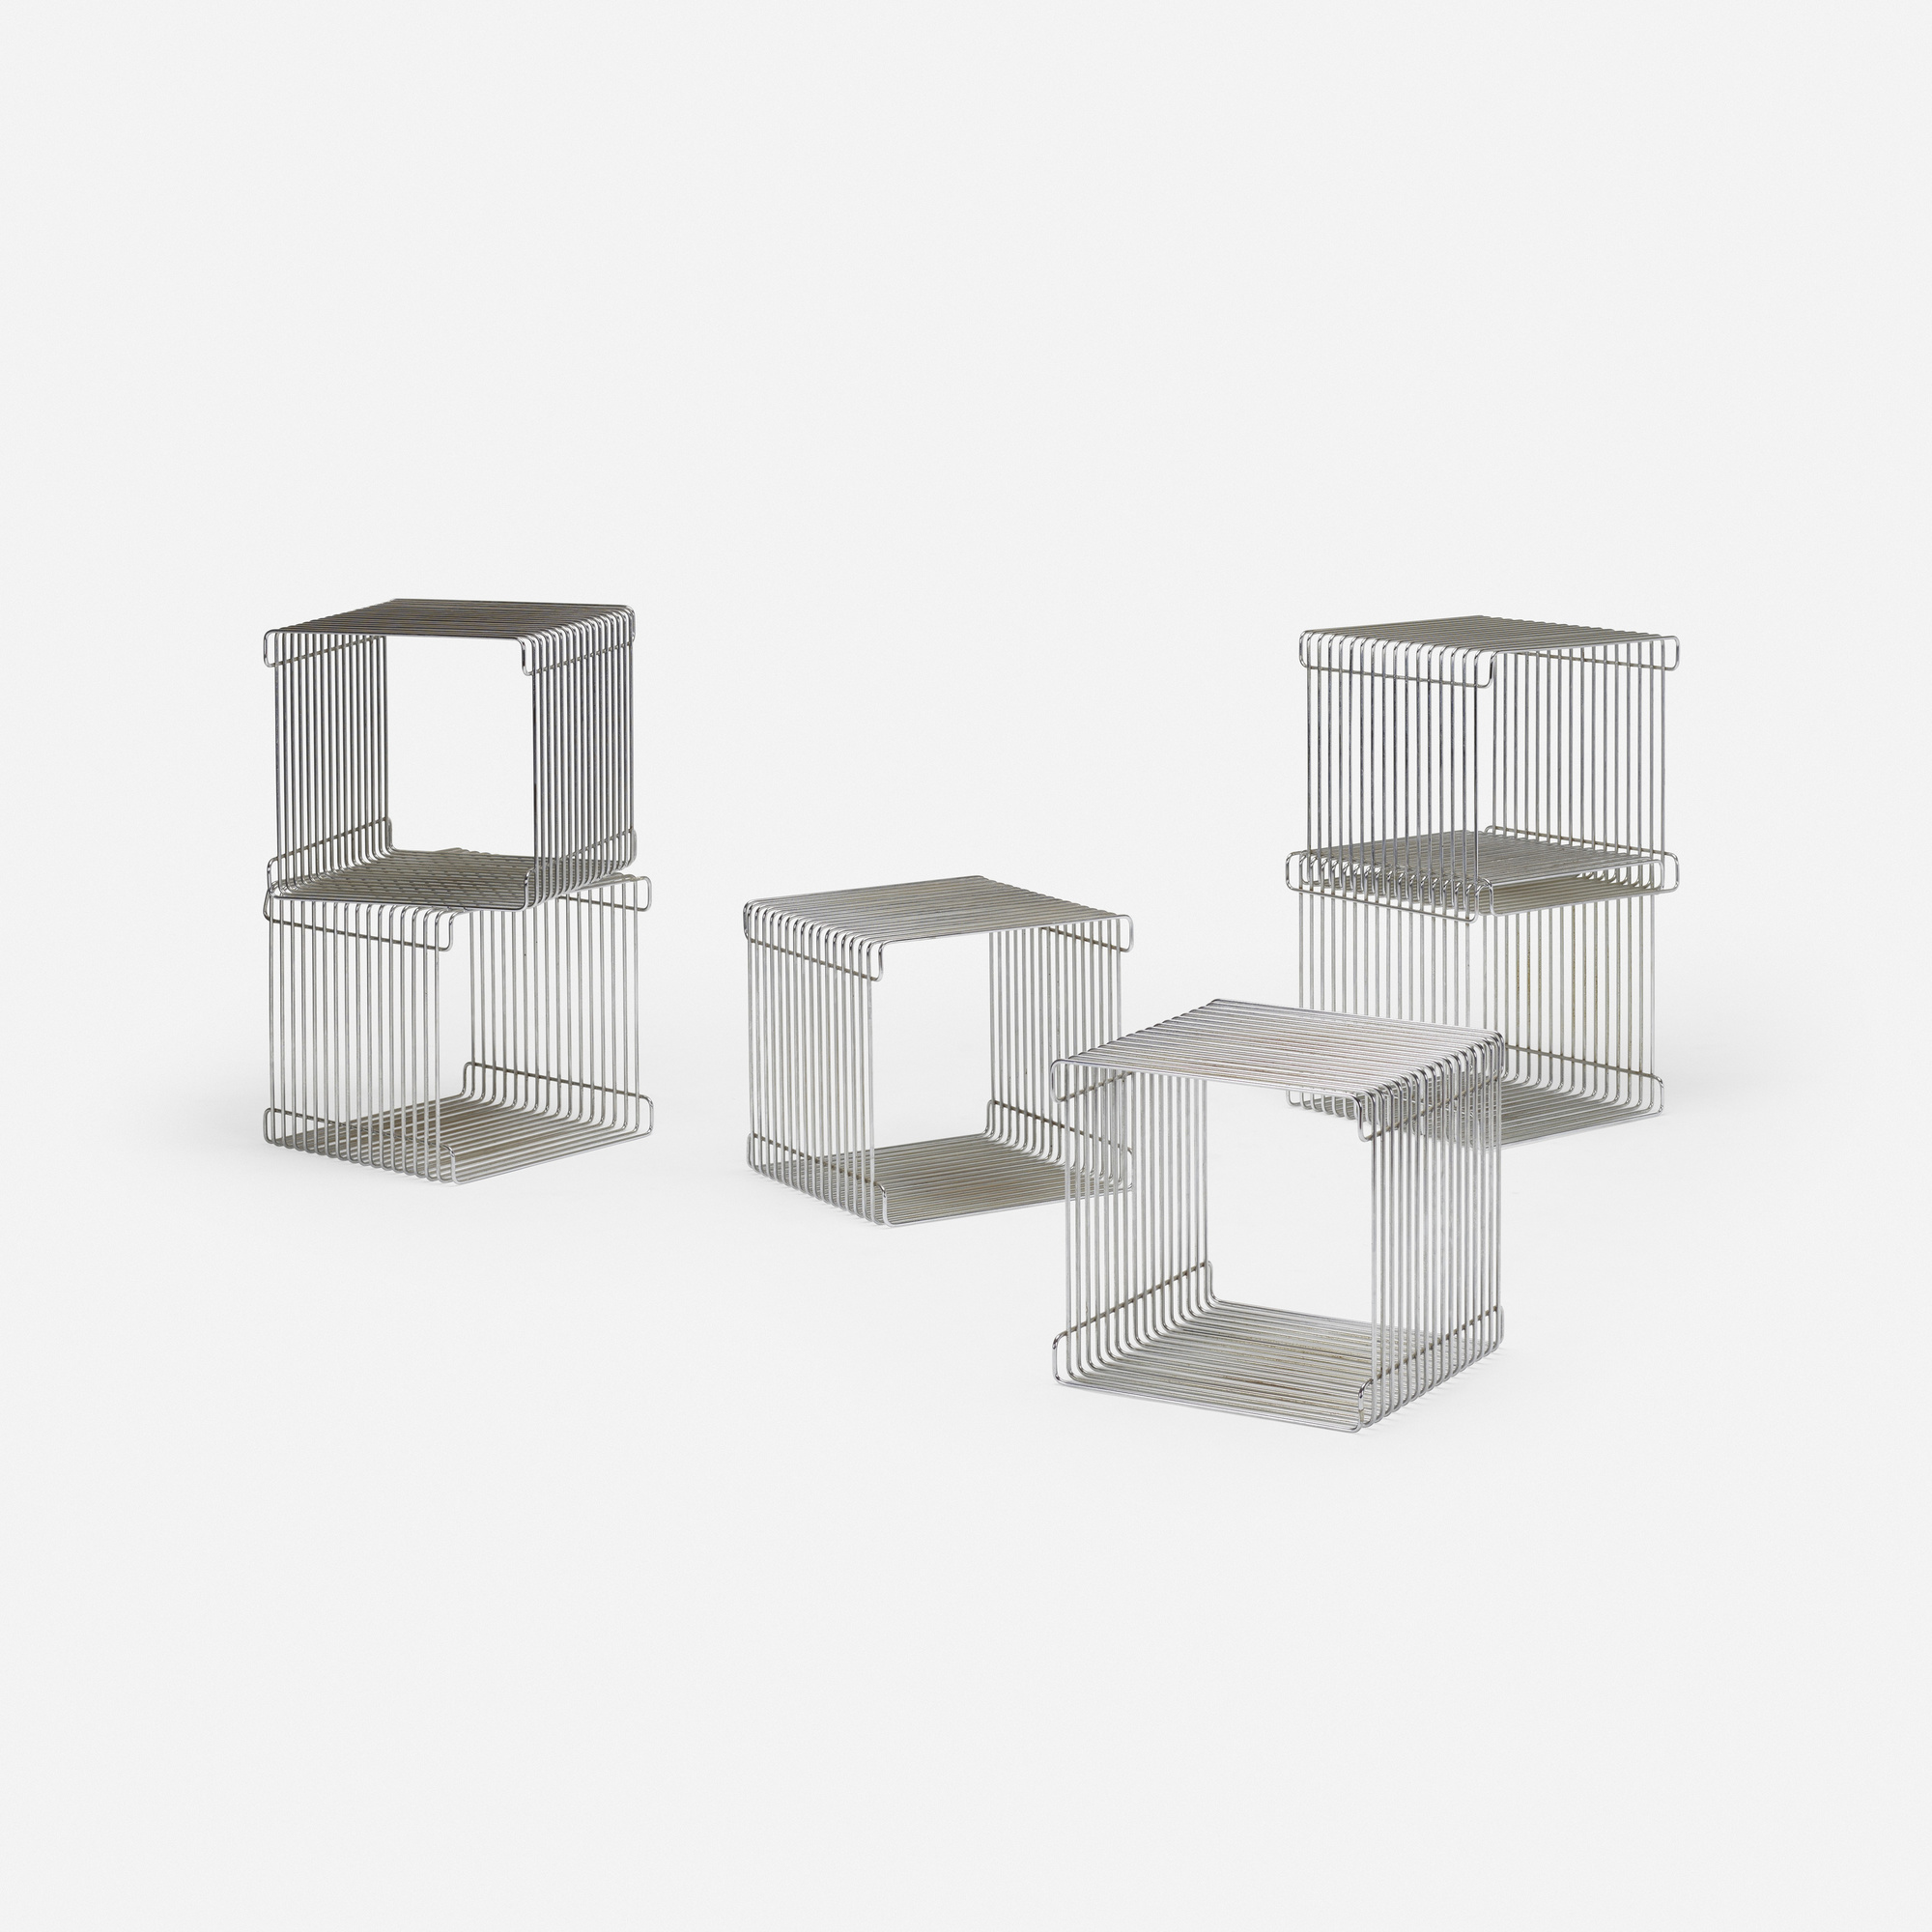 650: In the Manner of Verner Panton / stools, set of six (2 of 4)